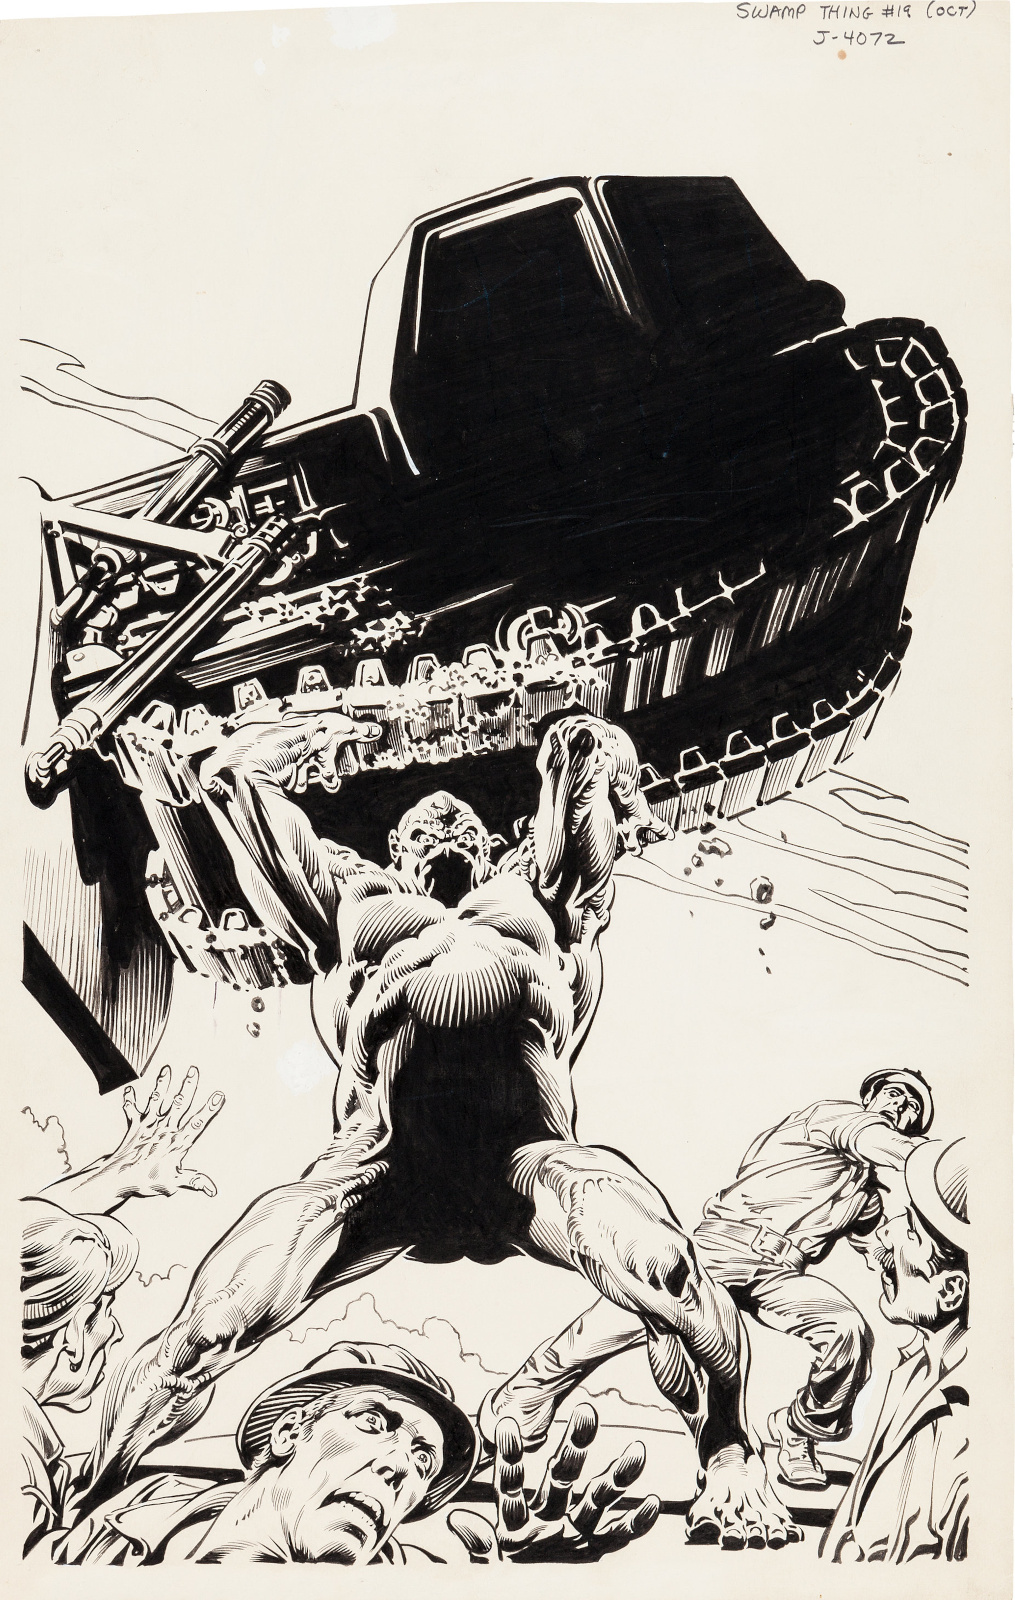 Swamp Thing issue 19 cover by Nestor Redondo